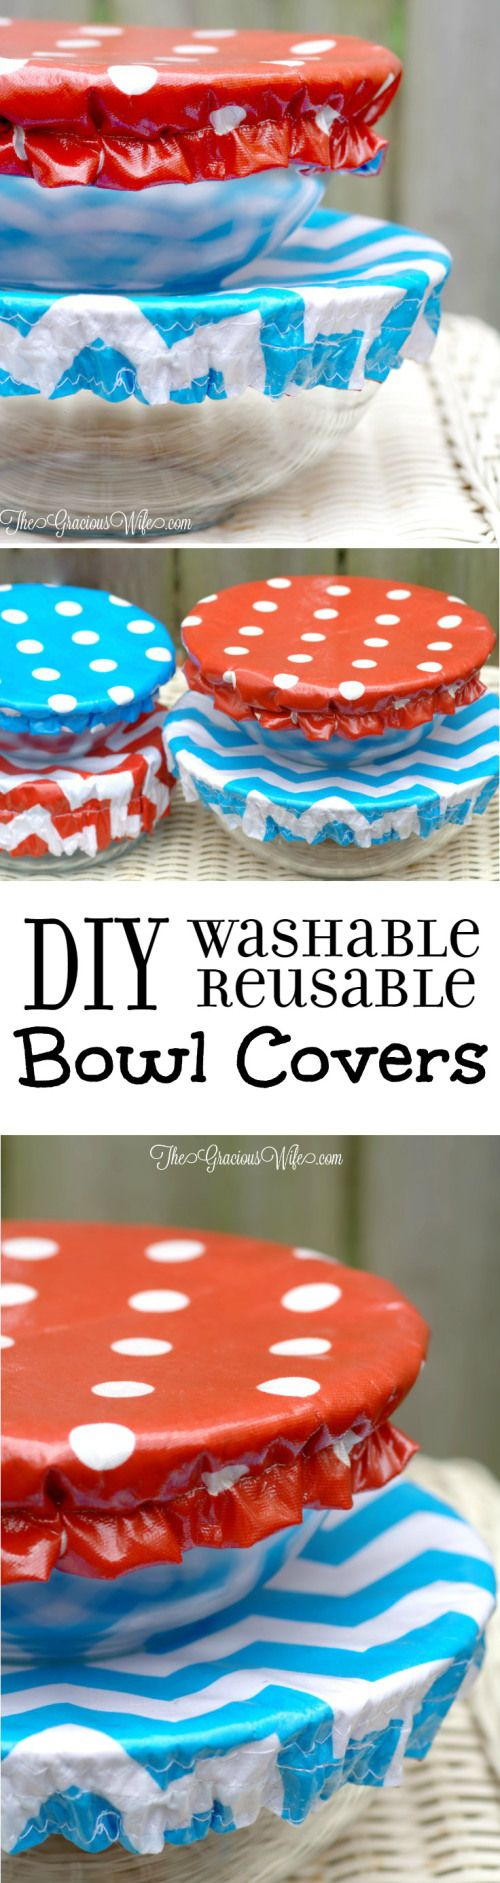 DIY Washable Reusable Bowl Covers - Sew these fun and easy reusable bowl cover DIY sewing project. Great for Summer! |DIY Crafts